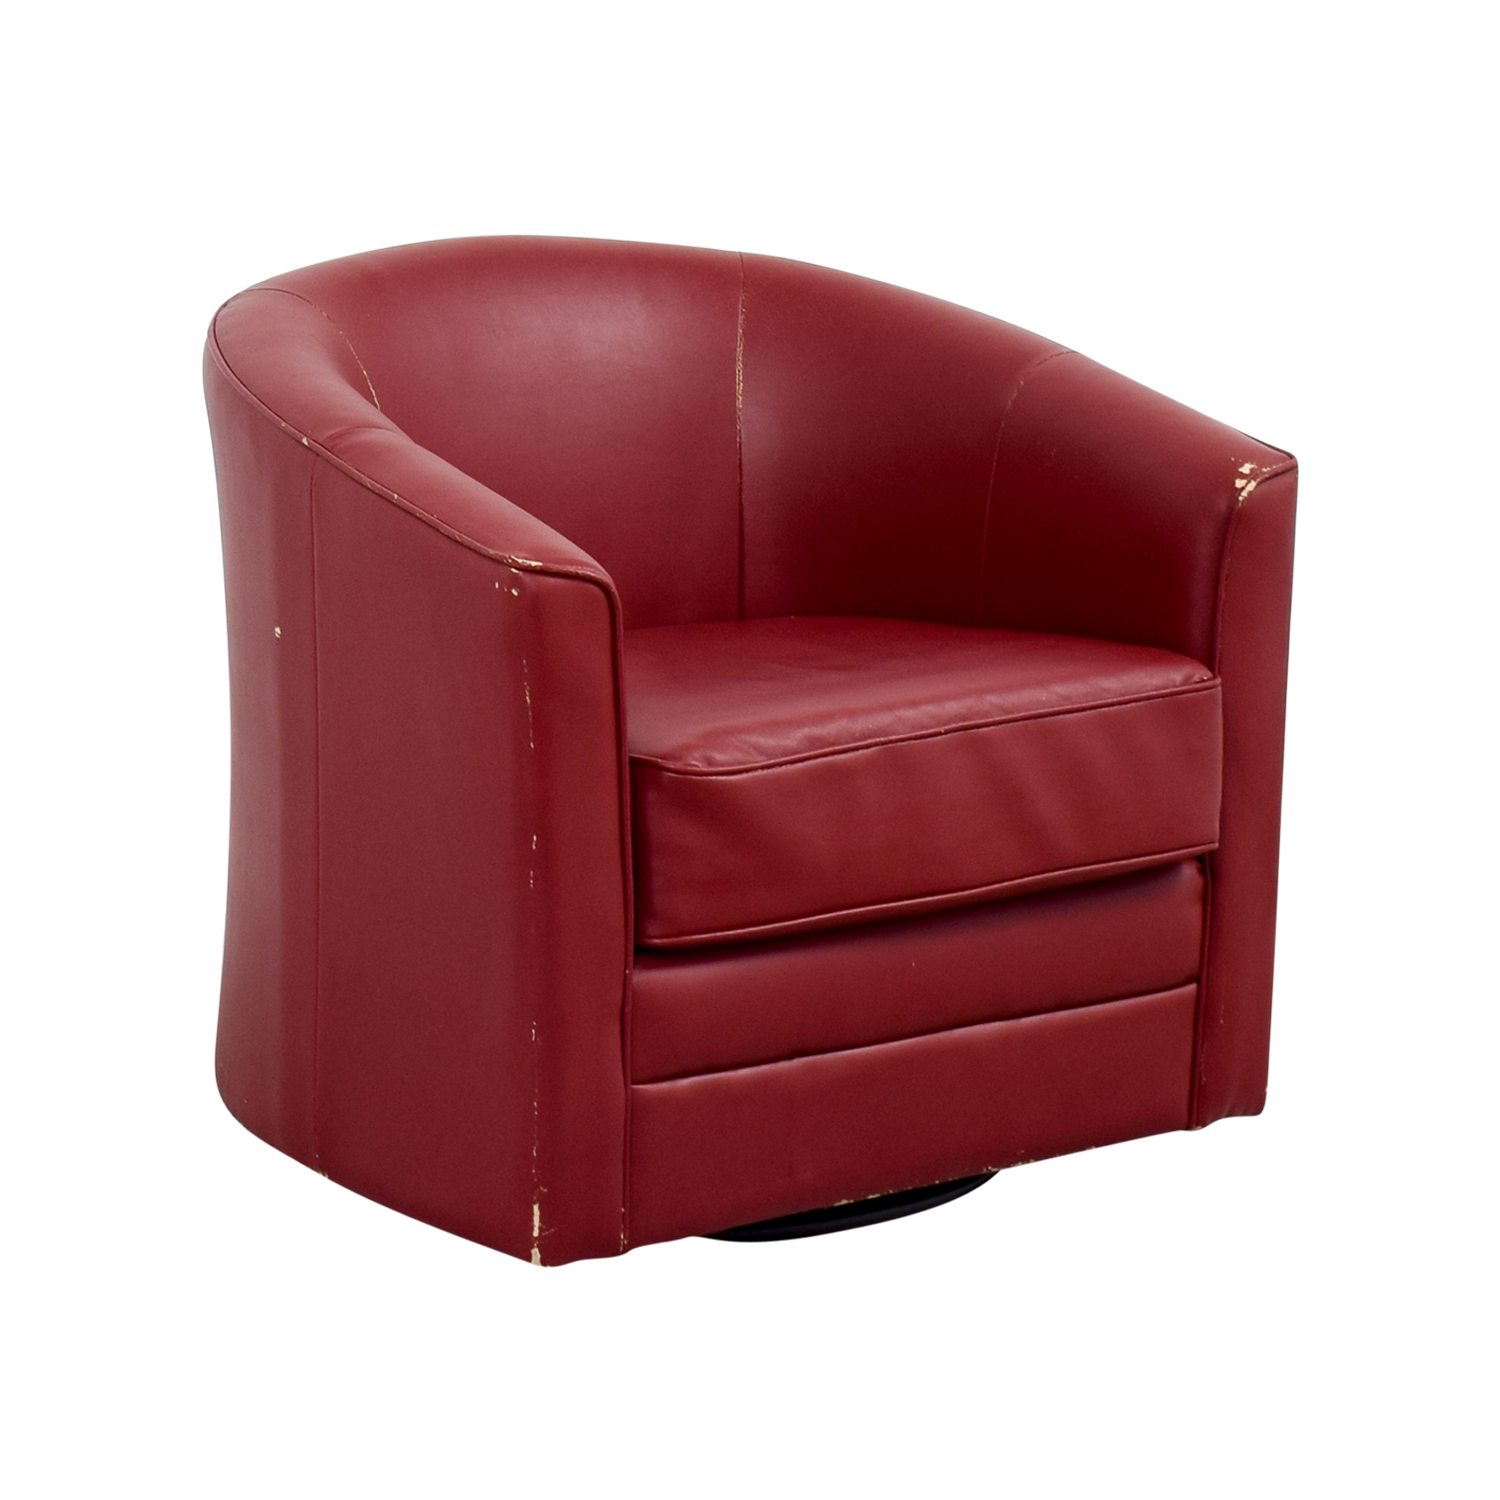 80% OFF Bob s Furniture Bob s Furniture Red Leather Chair Chairs